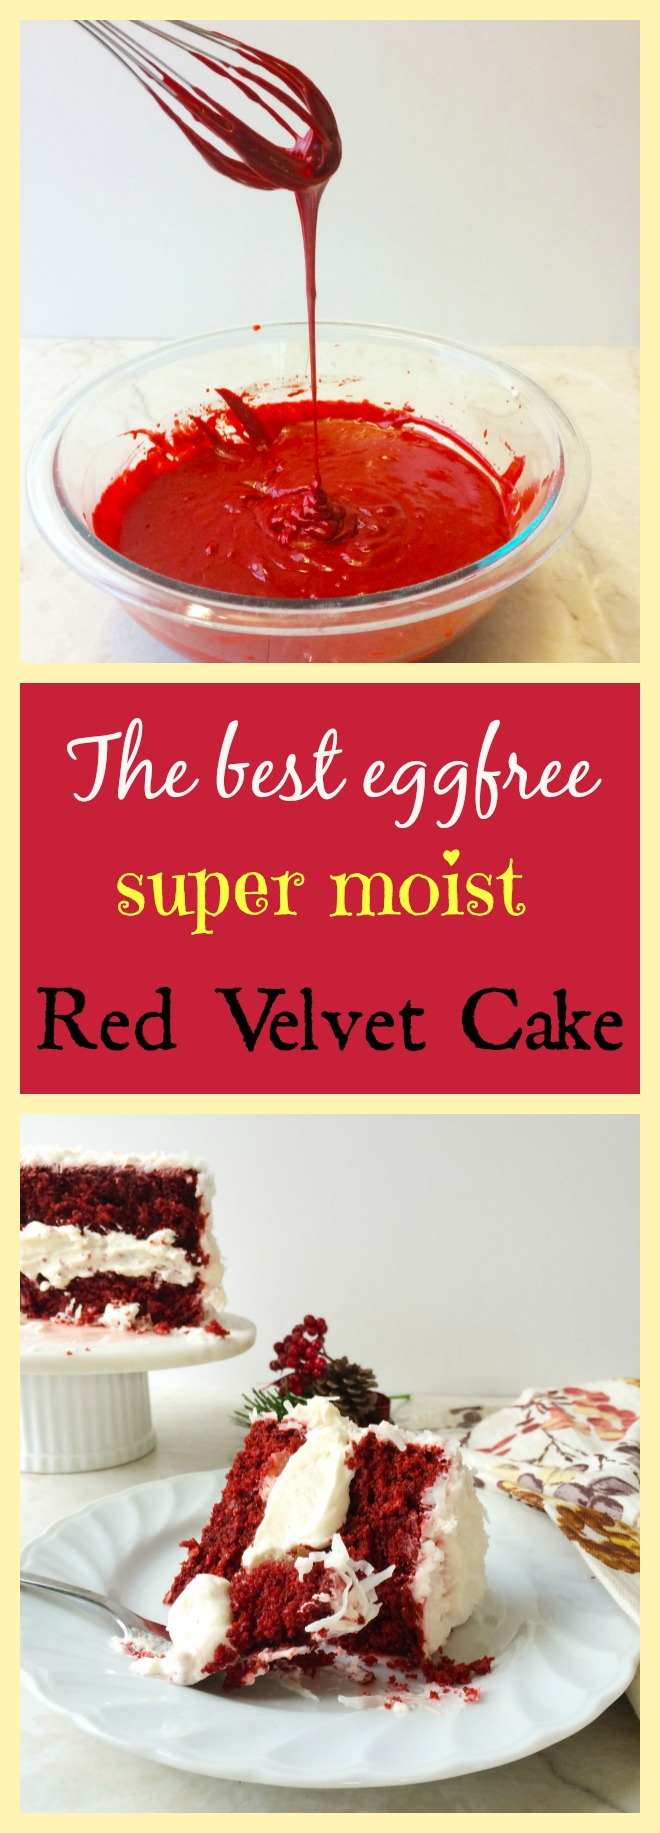 Carve Your Craving Red Velvet Cake